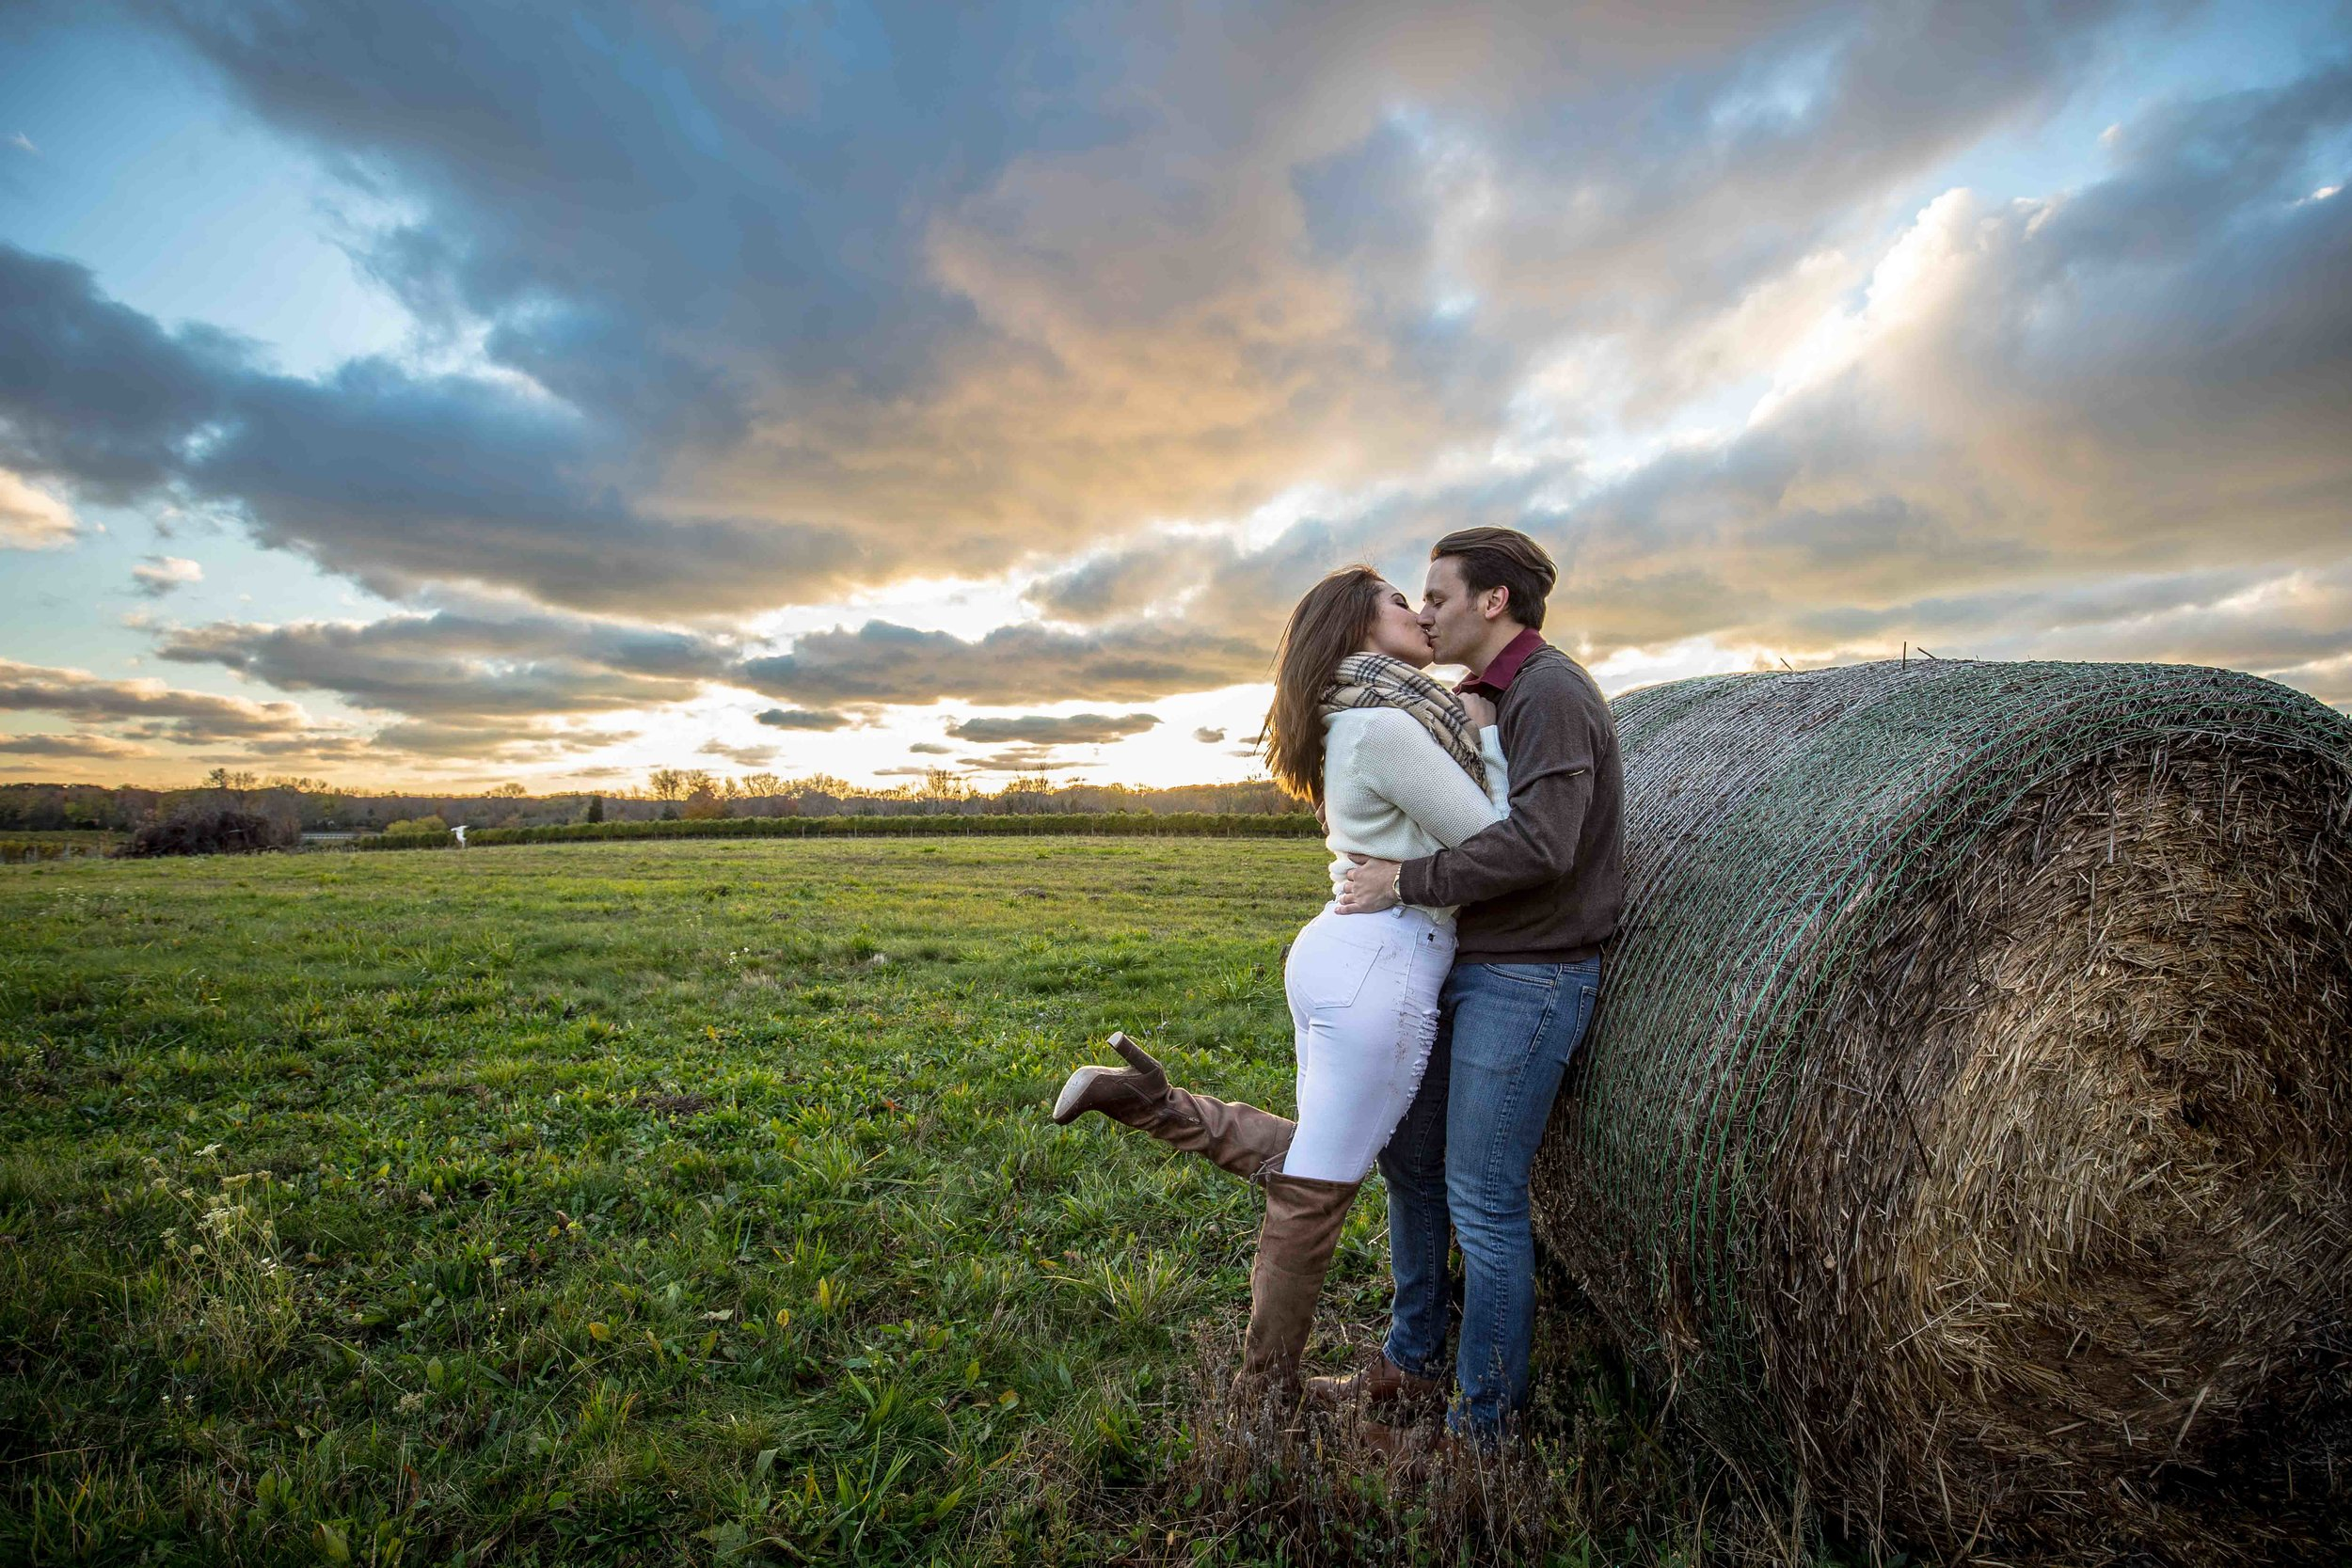 Leaning on hay bale with a leg kick kiss and a setting sun